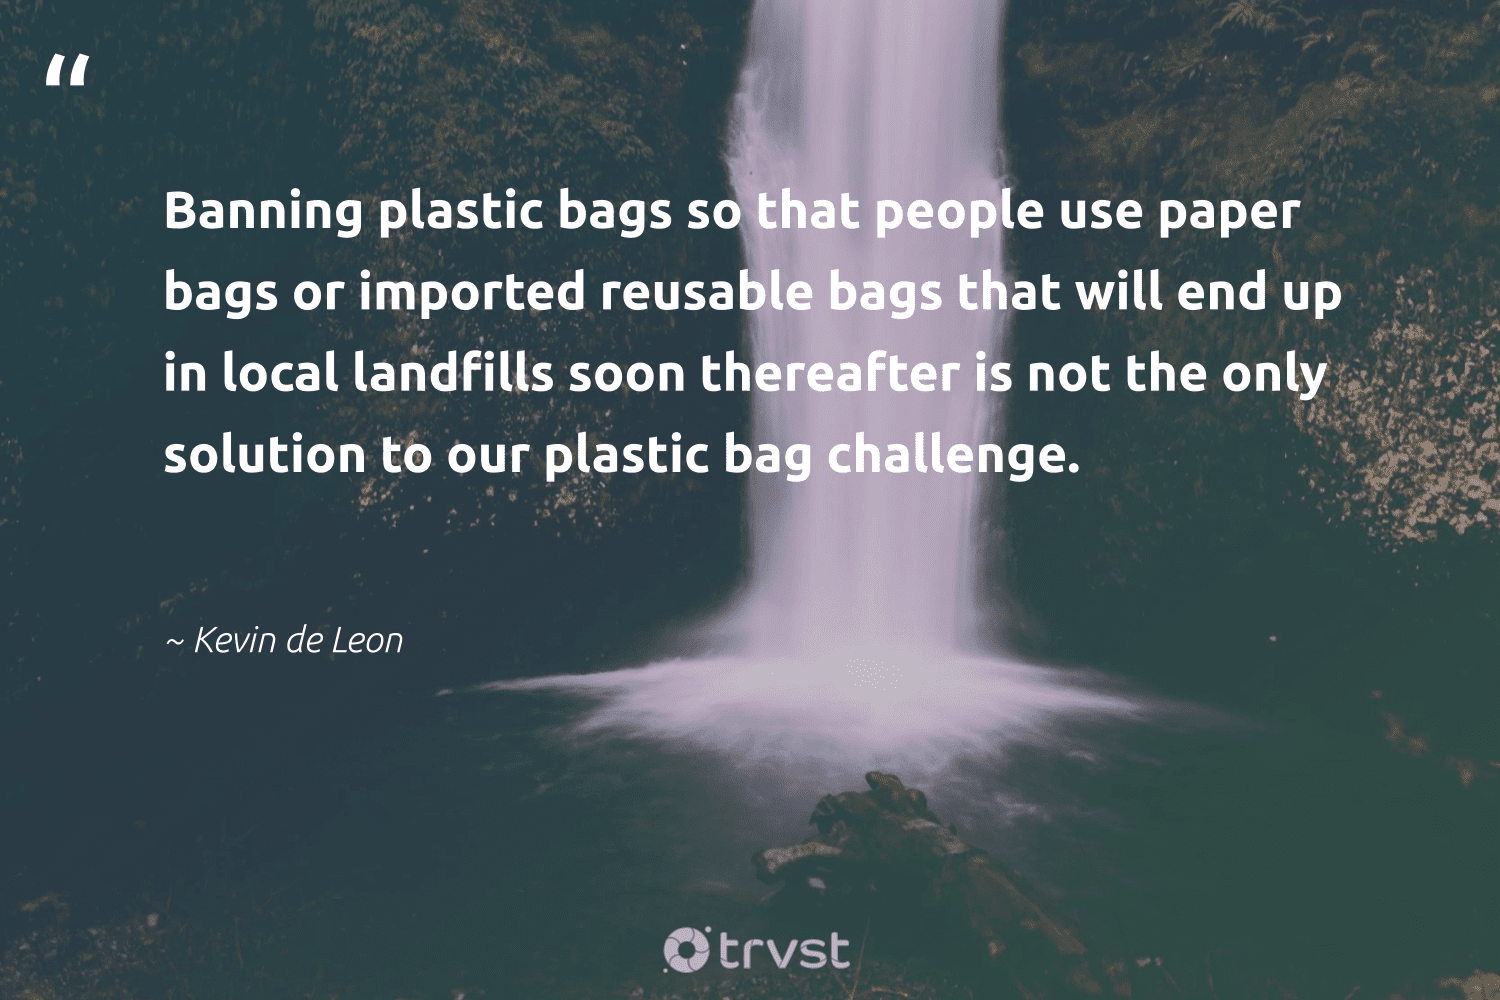 """""""Banning plastic bags so that people use paper bags or imported reusable bags that will end up in local landfills soon thereafter is not the only solution to our plastic bag challenge.""""  - Kevin de Leon #trvst #quotes #plasticwaste #landfills #plastic #banthebag #gogreen #sustainability #planetearthfirst #plasticpollutes #betterfortheplanet #saveourplanet"""